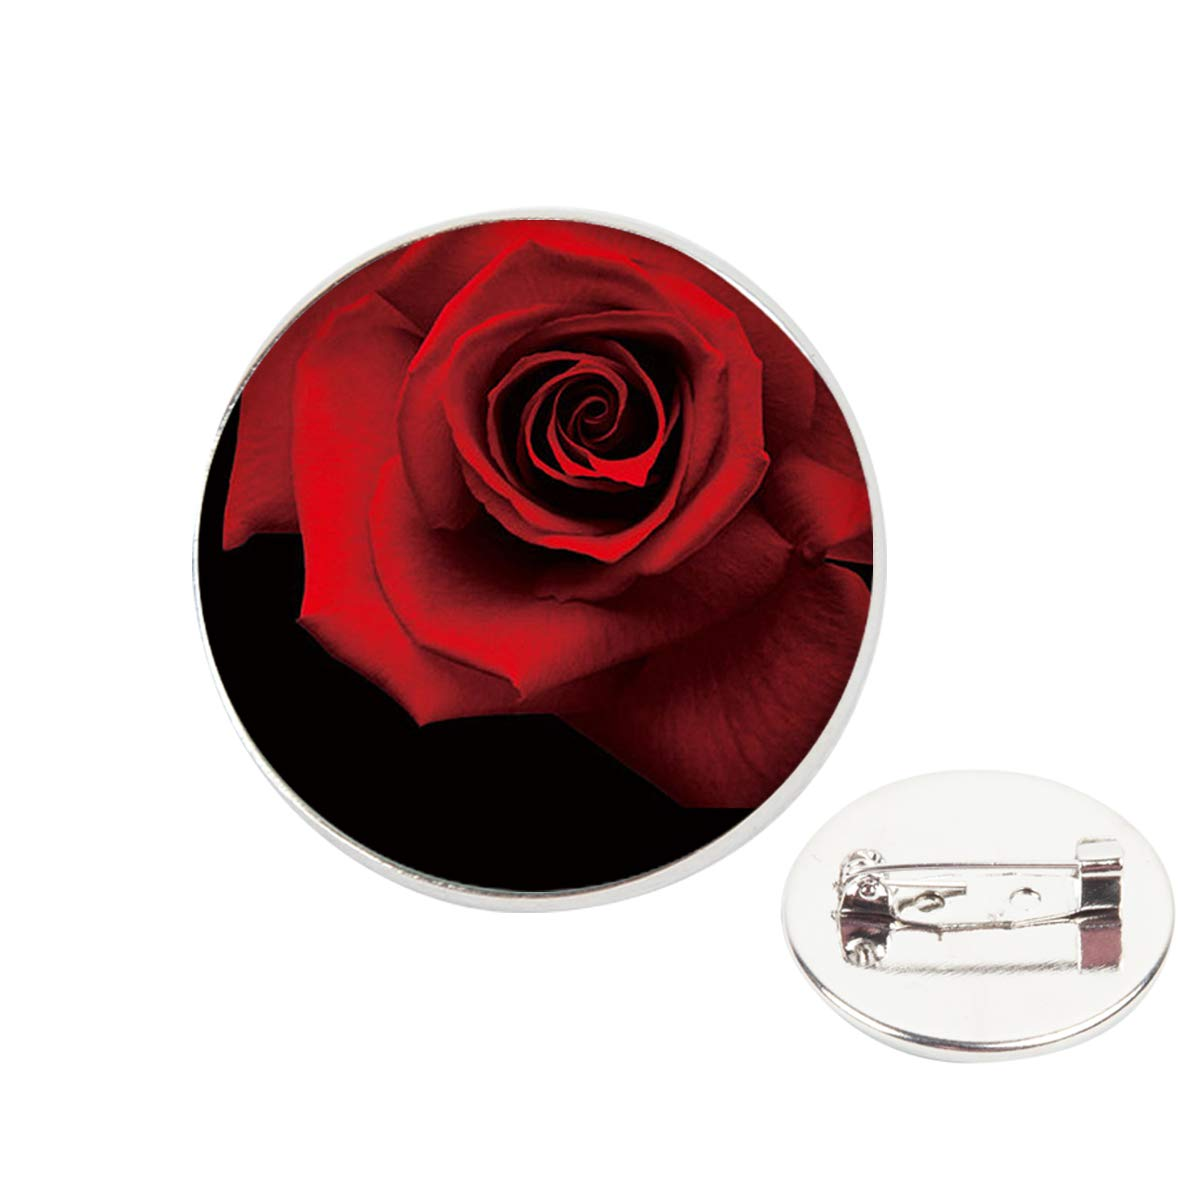 Pinback Buttons Badges Pins Red Rose Clear Image Lapel Pin Brooch Clip Trendy Accessory Jacket T-Shirt Bag Hat Shoe